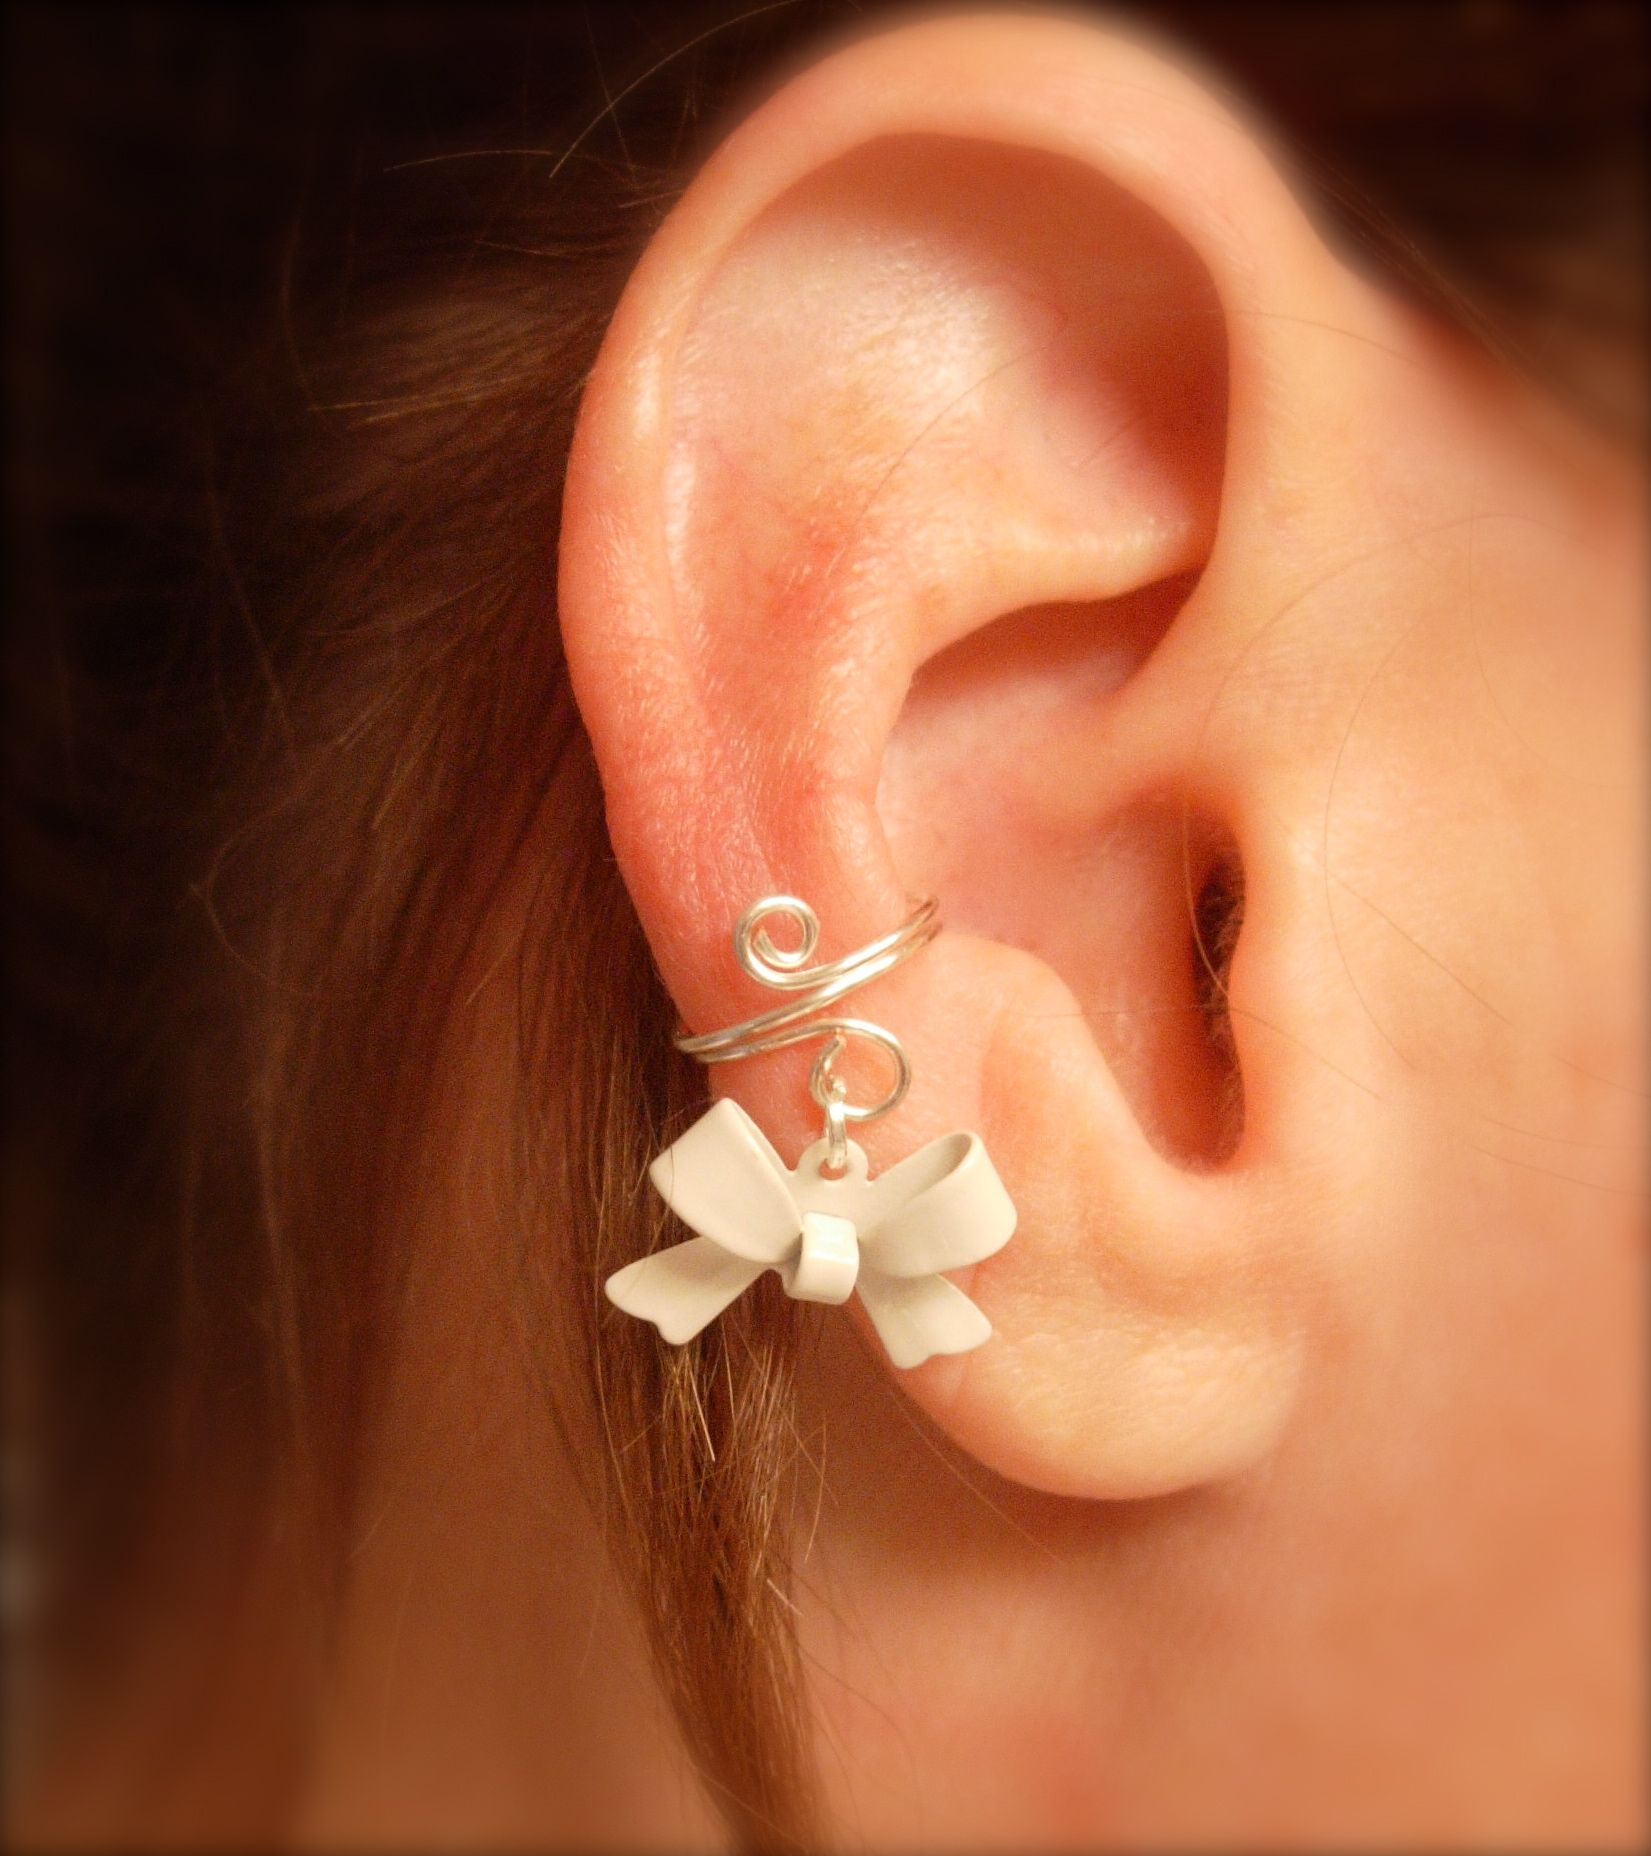 ear cuff dainty and feminine silver cuff with white bow. Black Bedroom Furniture Sets. Home Design Ideas